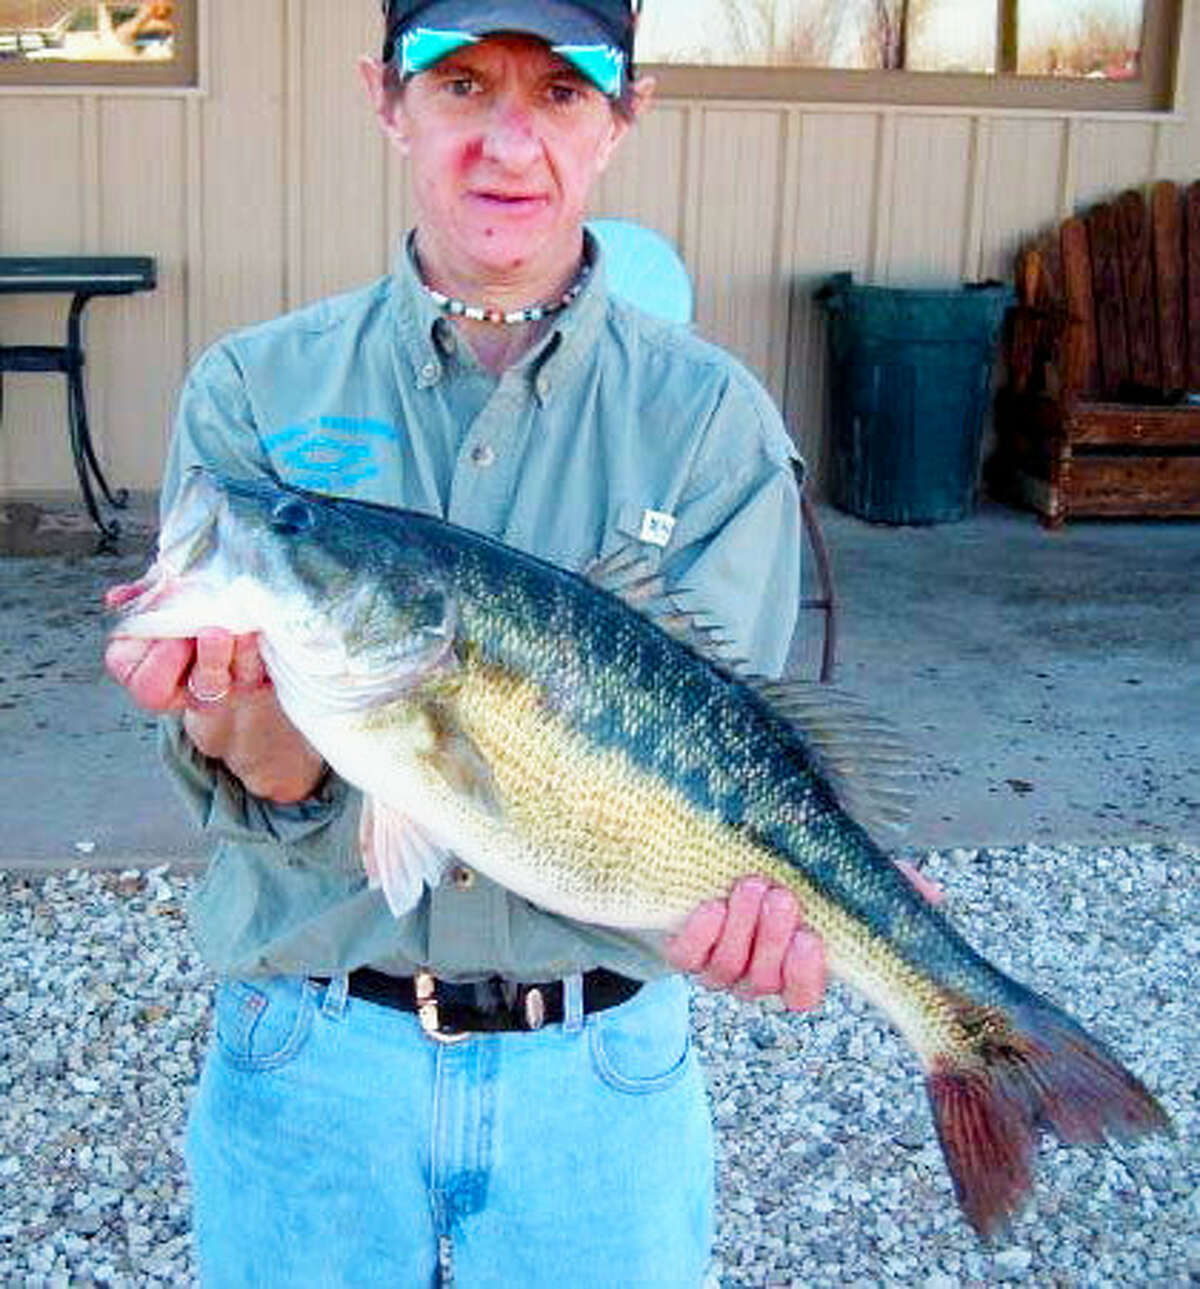 Where: Lake Alan Henry   Fish: Alabama Bass Weight: 5.98 Length: 22.25 Date Caught: Jan. 9, 2016 *Record fish not pictured*